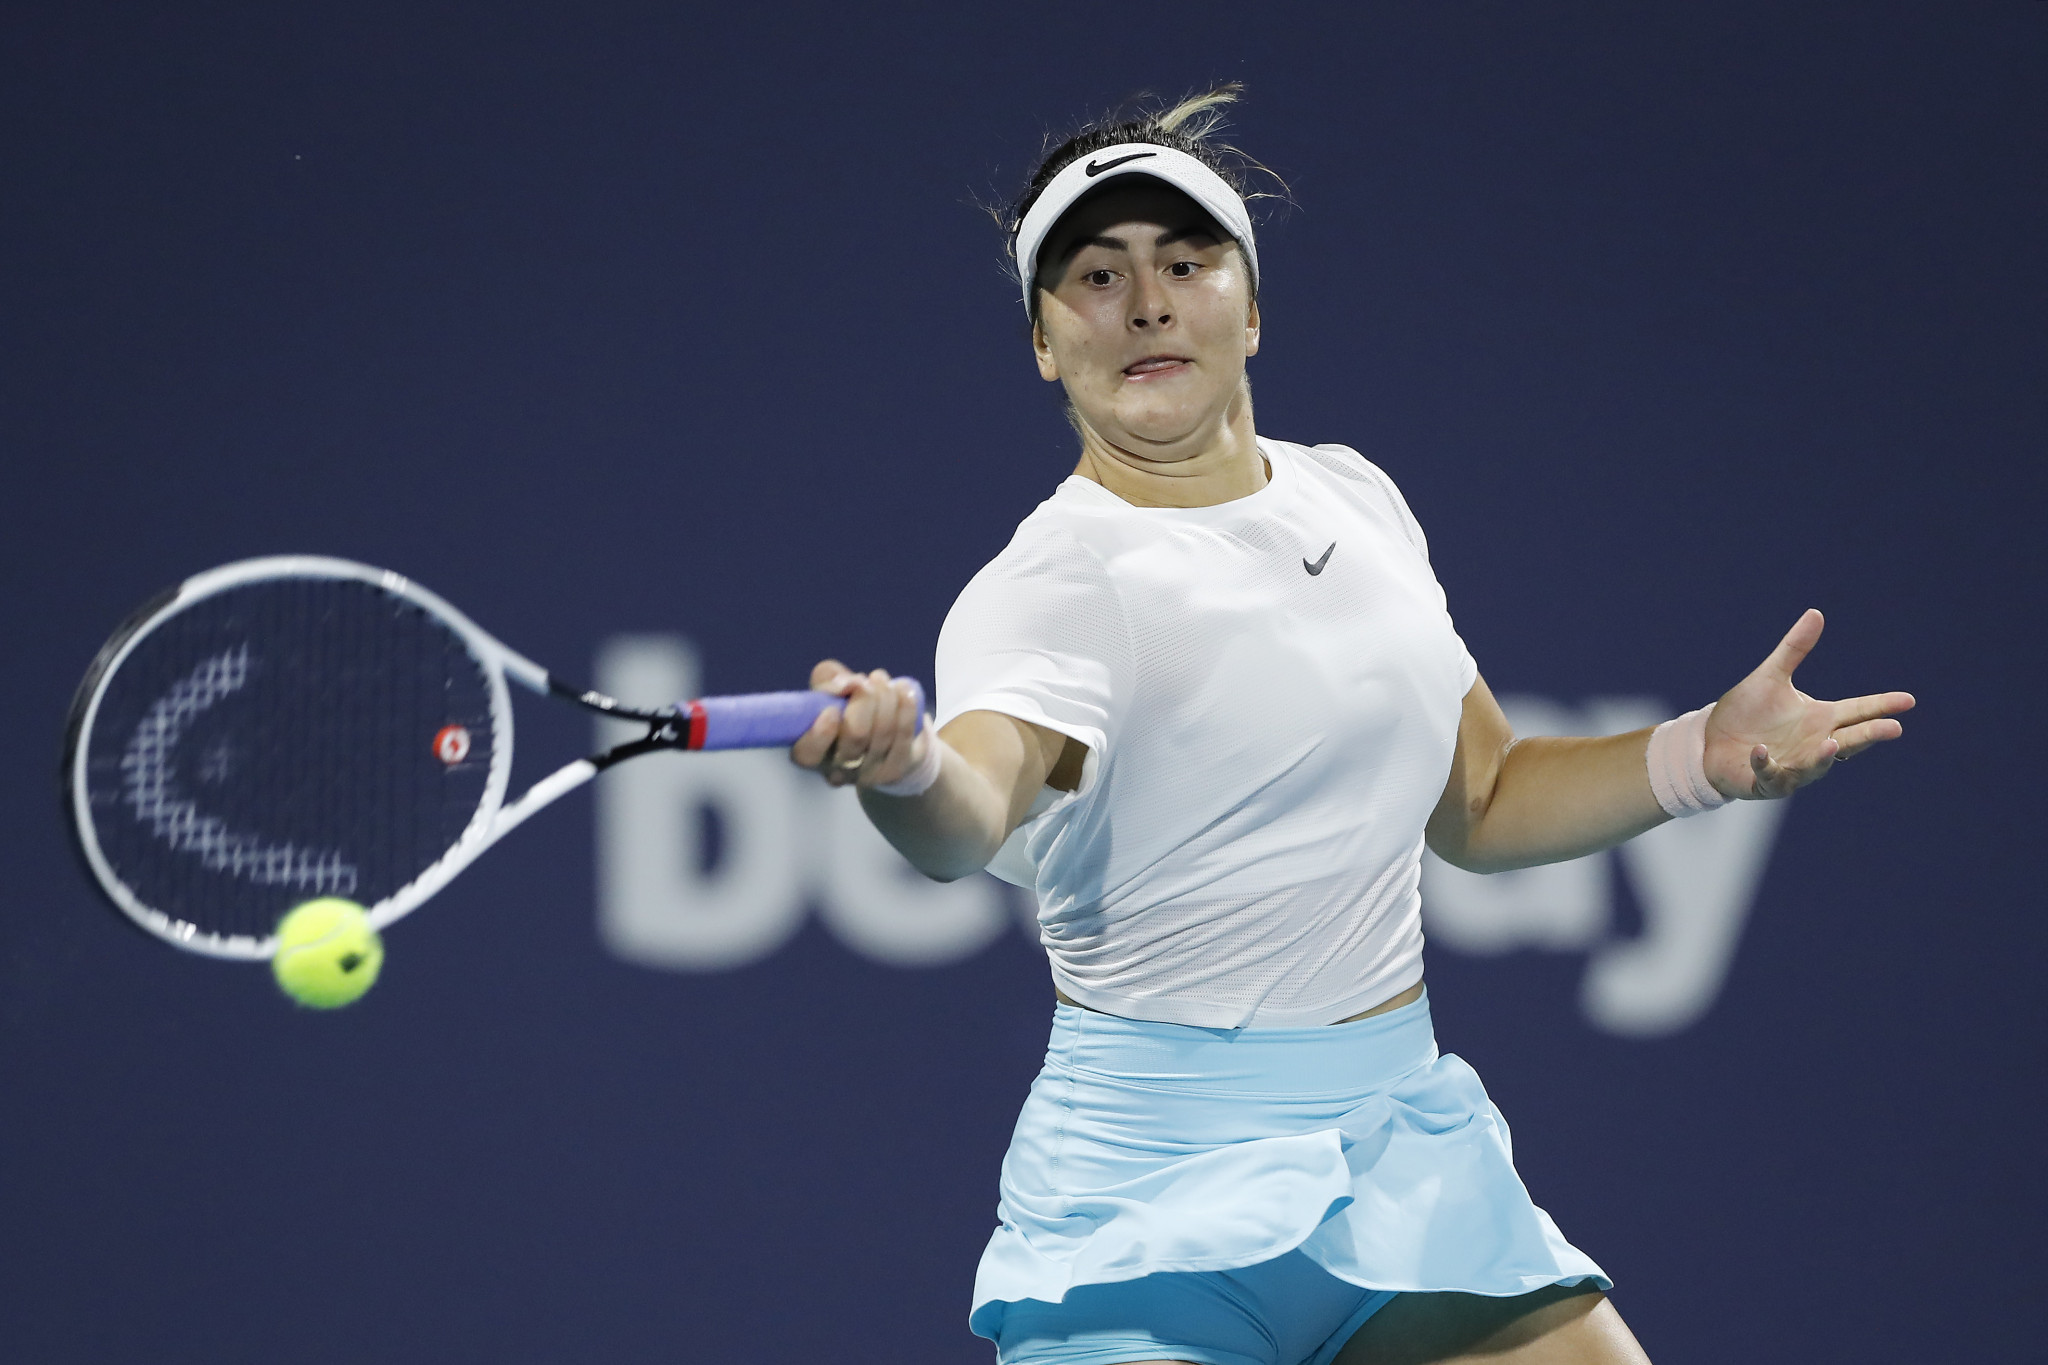 Bianca Andreescu is set to face Ashleigh Barty in the Miami Open final ©Getty Images